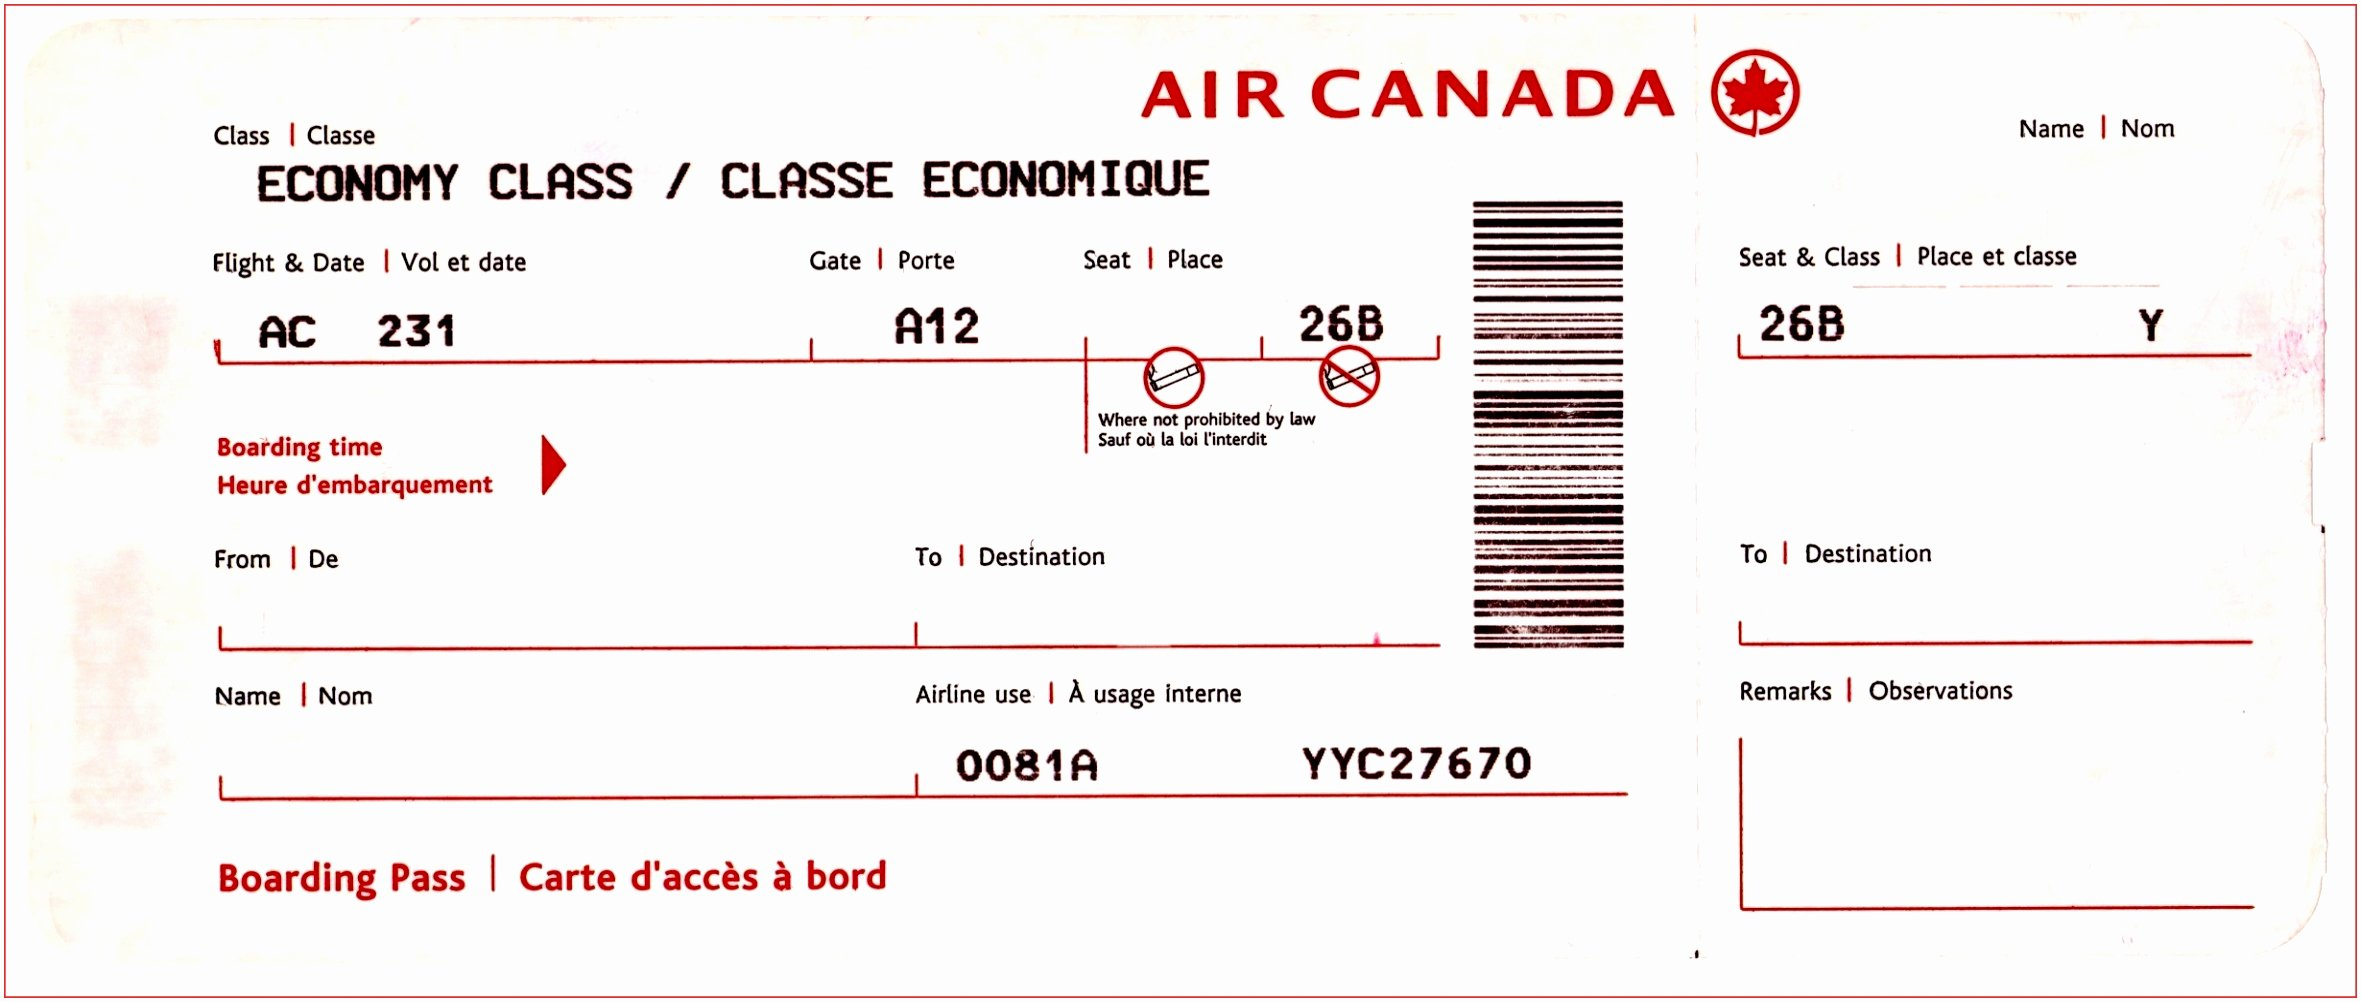 Plane Ticket Template Pdf Best Of 9 Airline Ticket Template Word Tyopn